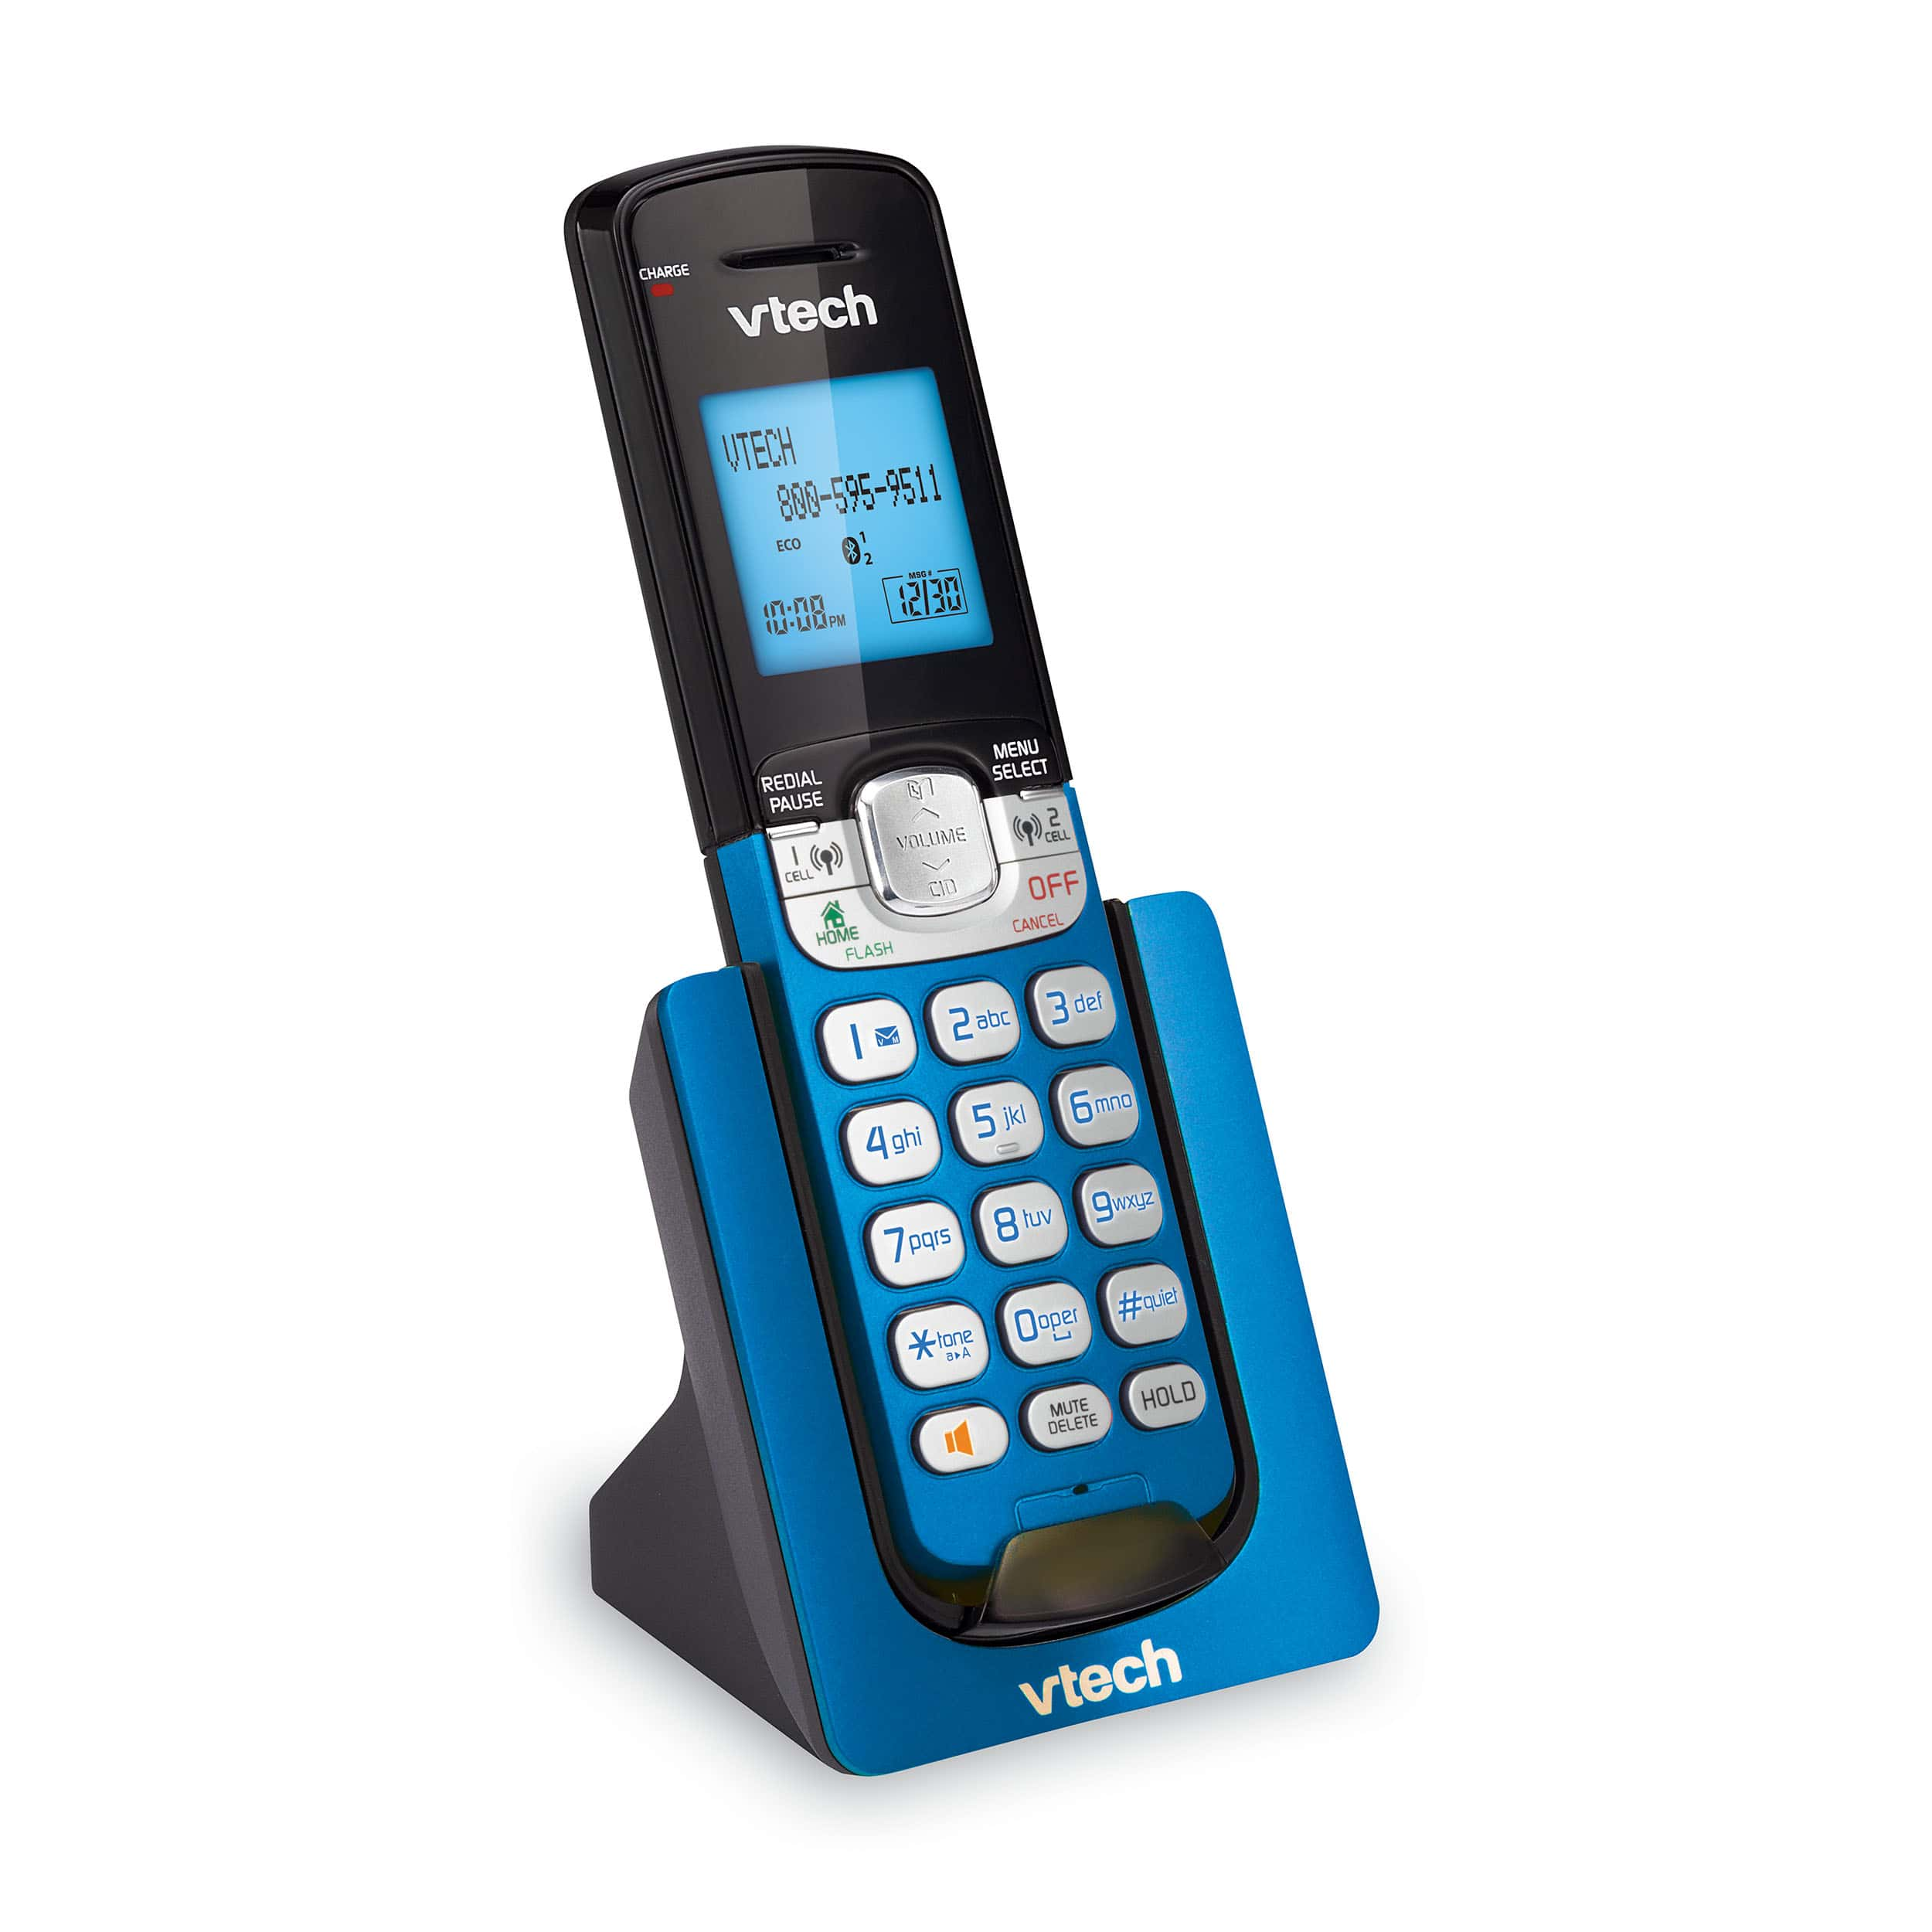 Home communications communications communication by telephone - 4 Handset Connect To Cell Phone System With Caller Id Call Waiting Ds667v 2f Three Ds607v 1f Vtech Cordless Phones